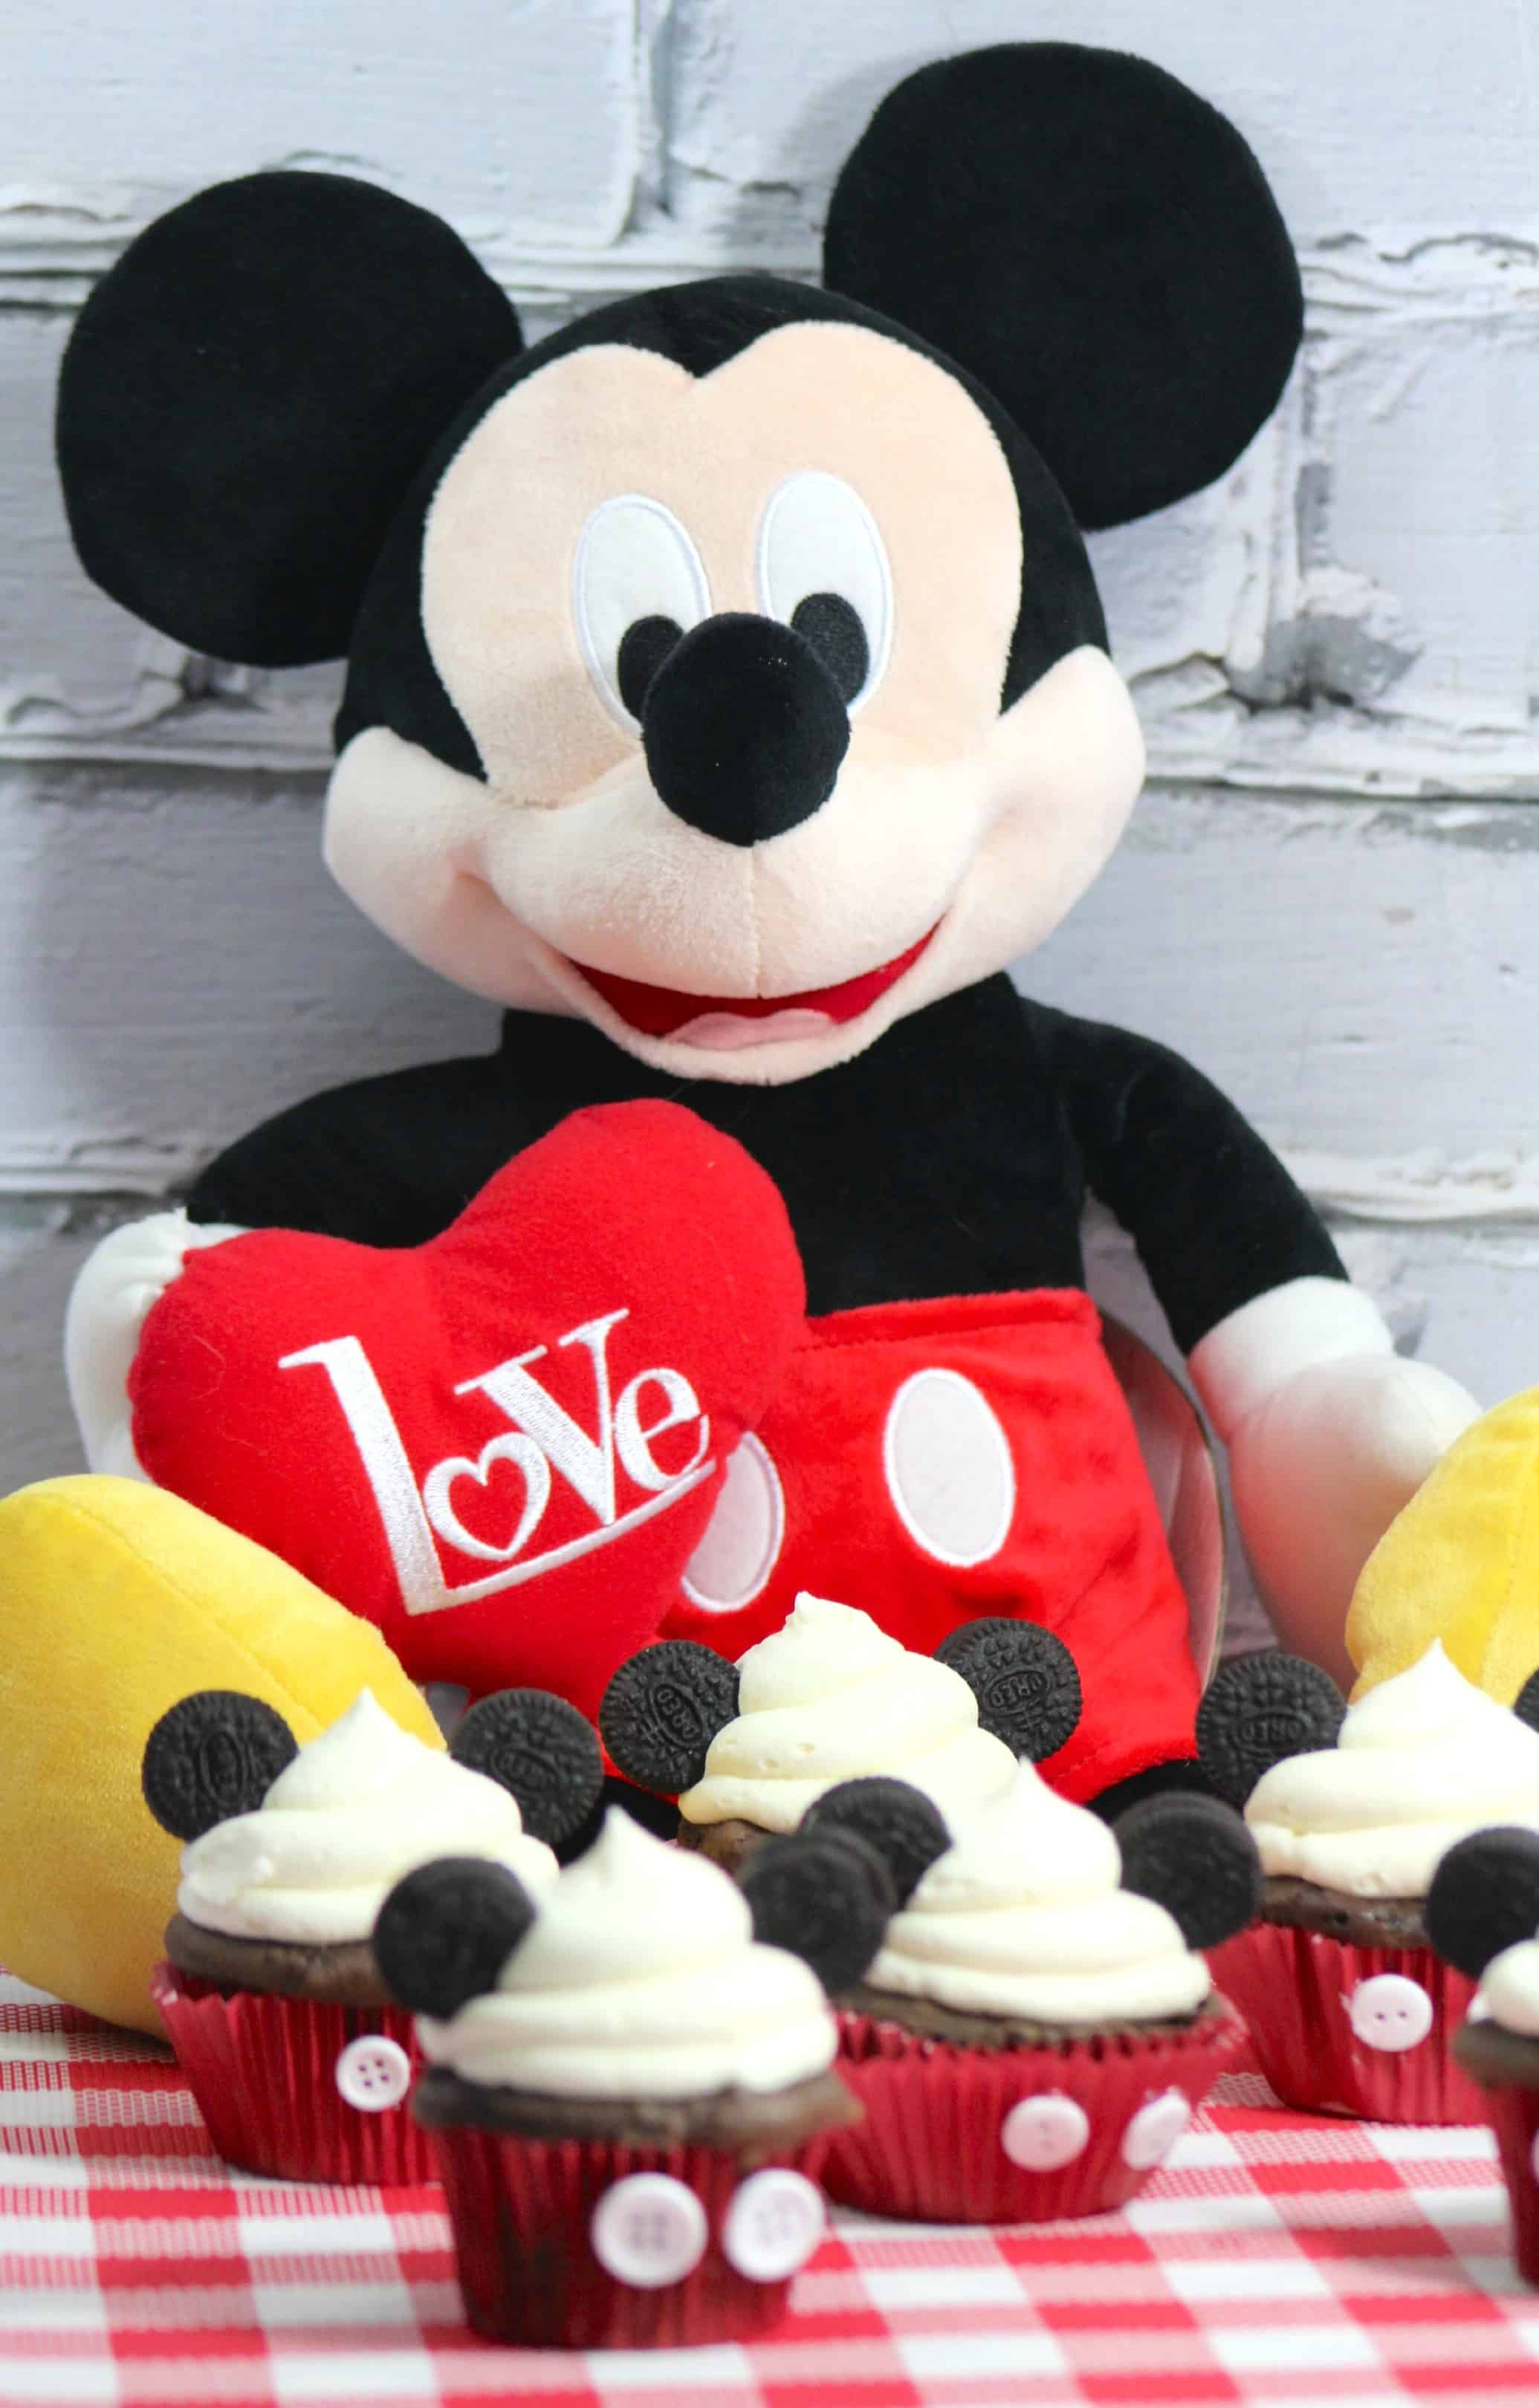 Marvelous Disney Mickey Mouse Inspired Cupcakes Food Recipe Tutorial